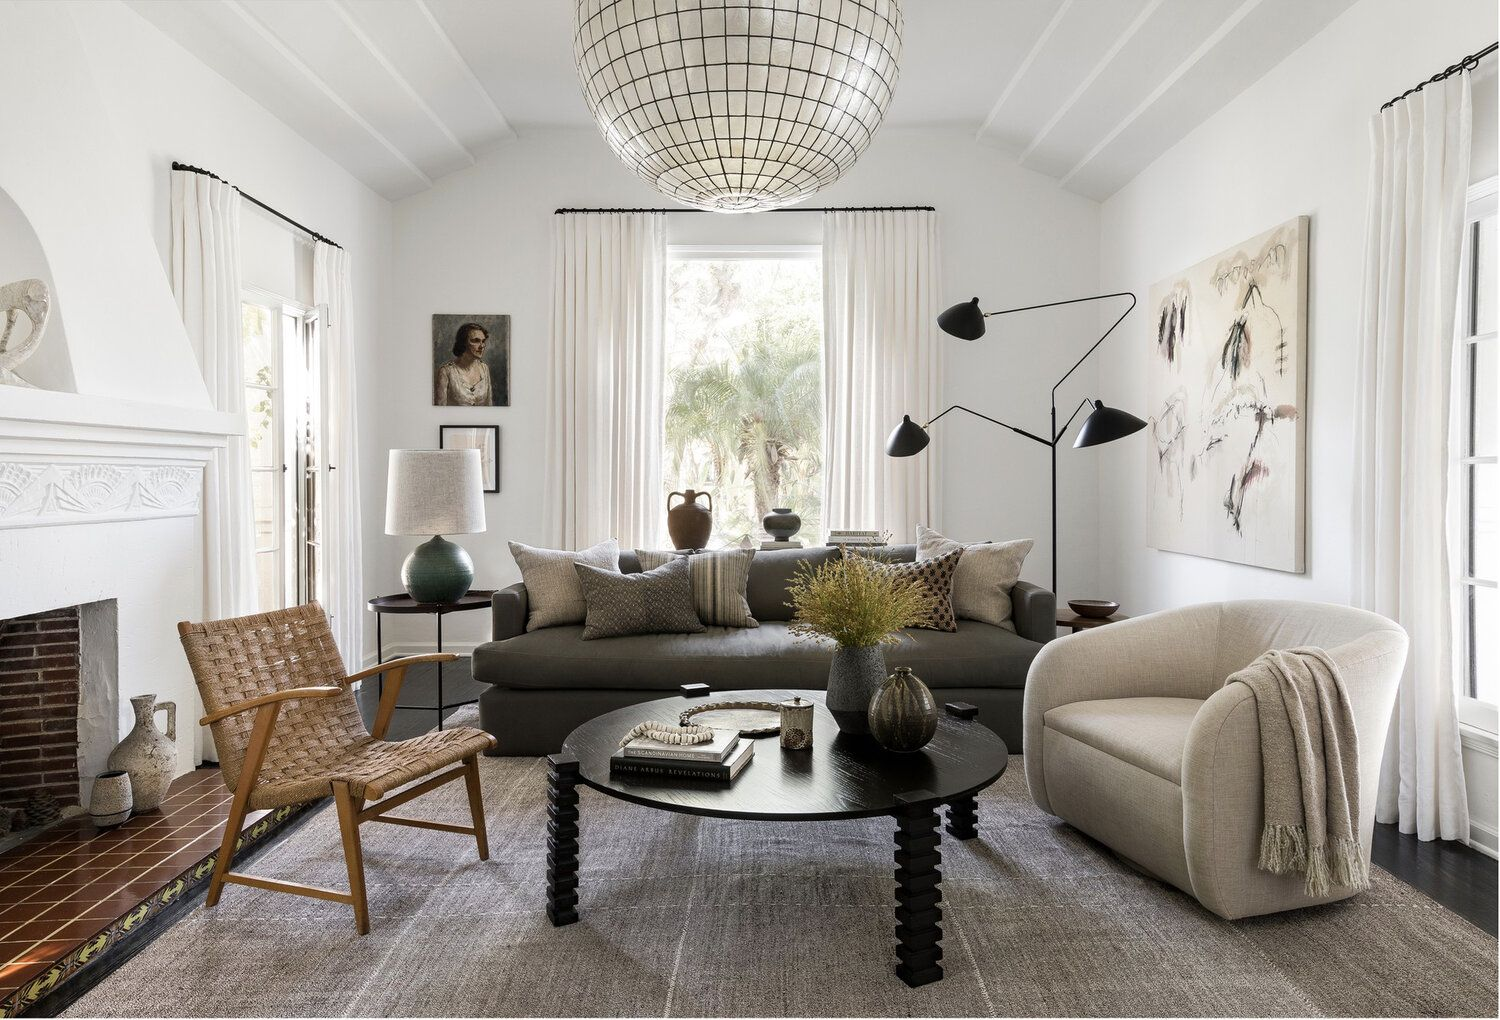 Home Tour This Spanish Art Deco Remodel Strikes The Perfect Balance Of Modern And Traditional The Grit And Polish In 2020 Home Decor Home Decor Styles Easy Home Decor